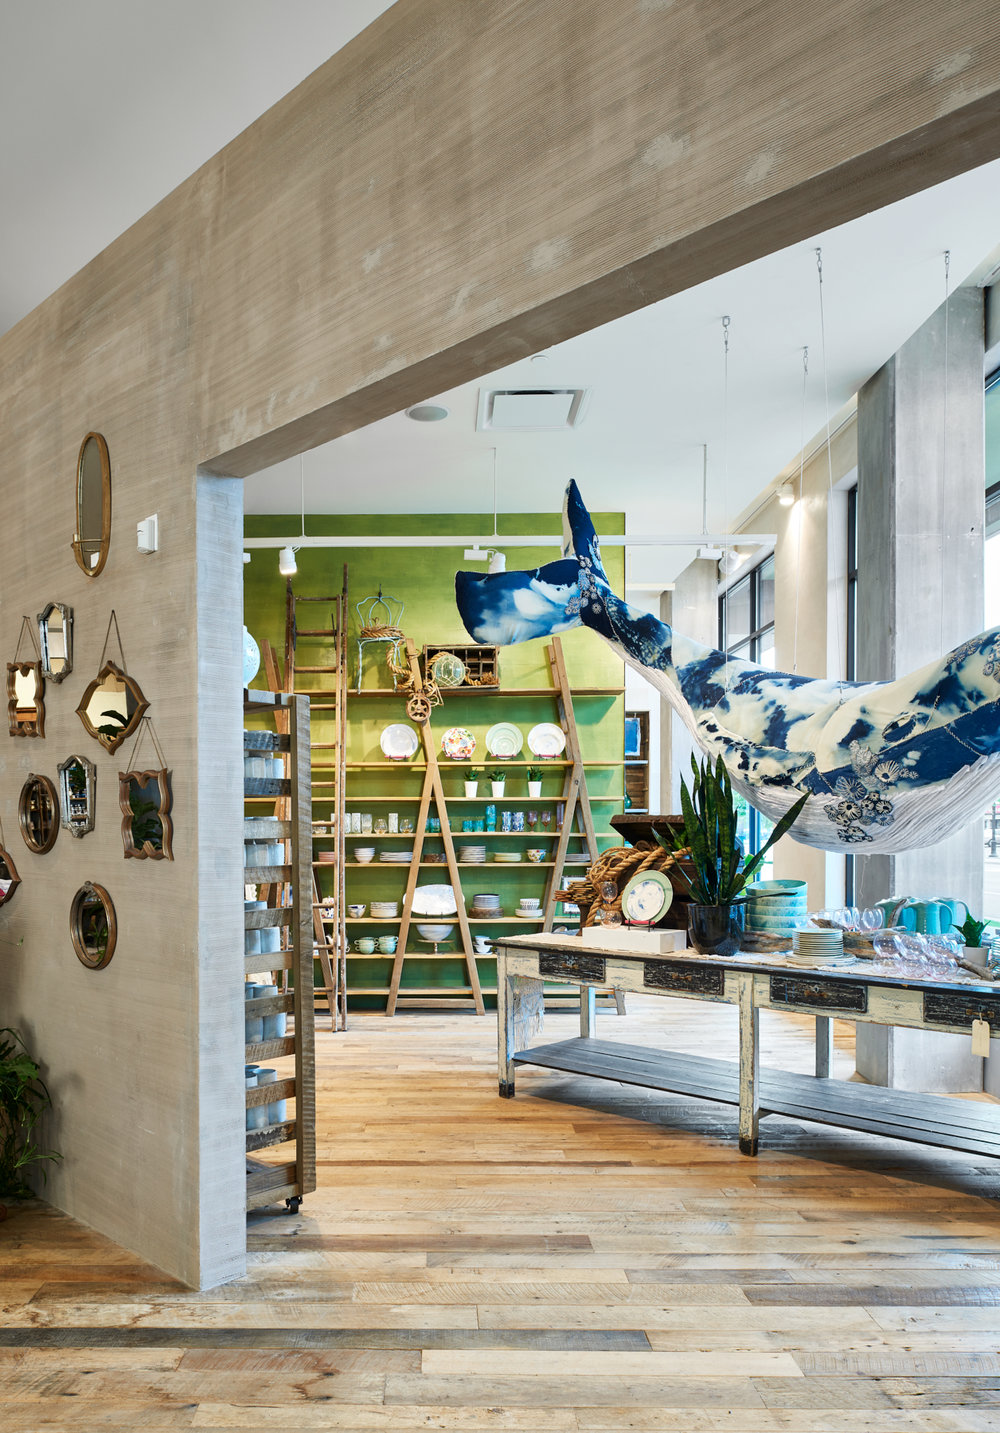 Spacious interior design of Anthropologie in Wayzata, Minnesota, created in collaboration with NewStudio Architecture